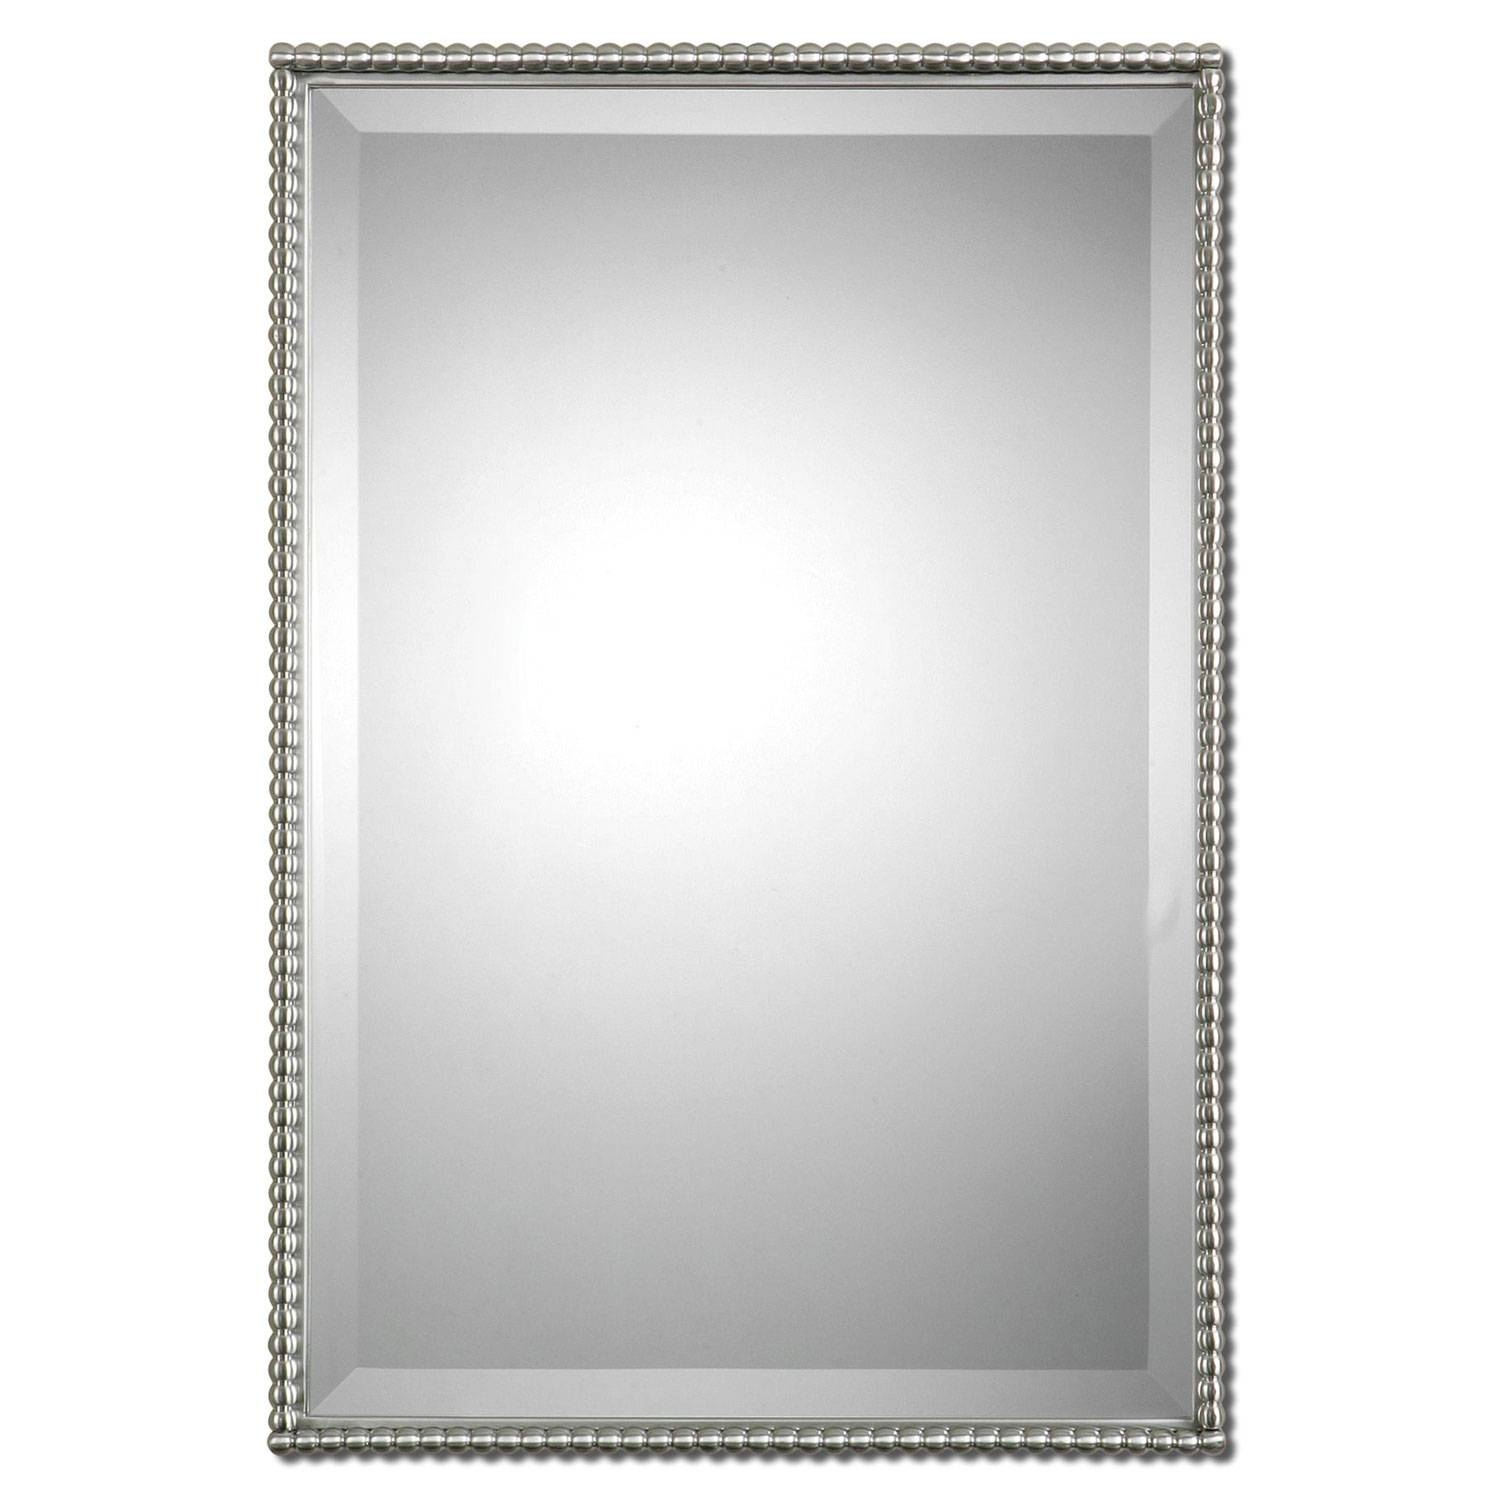 Brushed Nickel Sherise Rectangle Mirror Uttermost Wall Mirror Regarding Chrome Framed Mirrors (View 4 of 15)